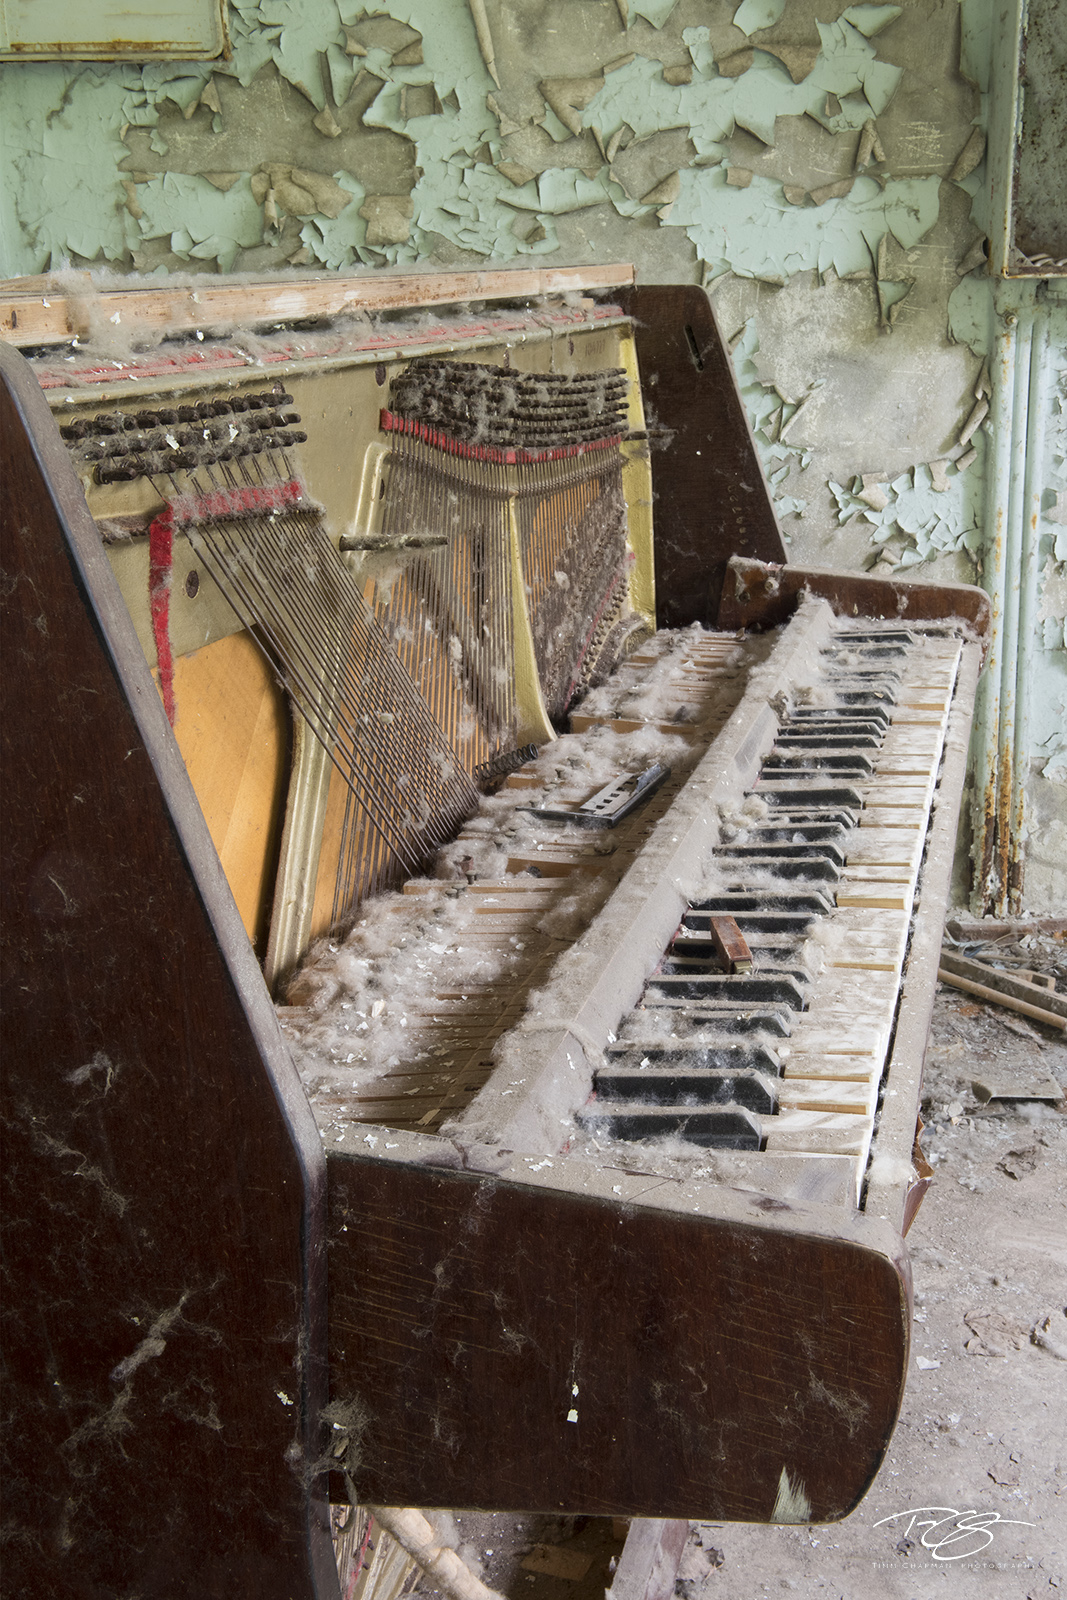 chernobyl, chornobyl, pripyat, exclusion zone, abandoned, forgotten, wasteland, radioactive, decay, peeling paint, reclamation, dusty, wood, piano, green, dust bunny, keys, dust, dirty, weathered, photo